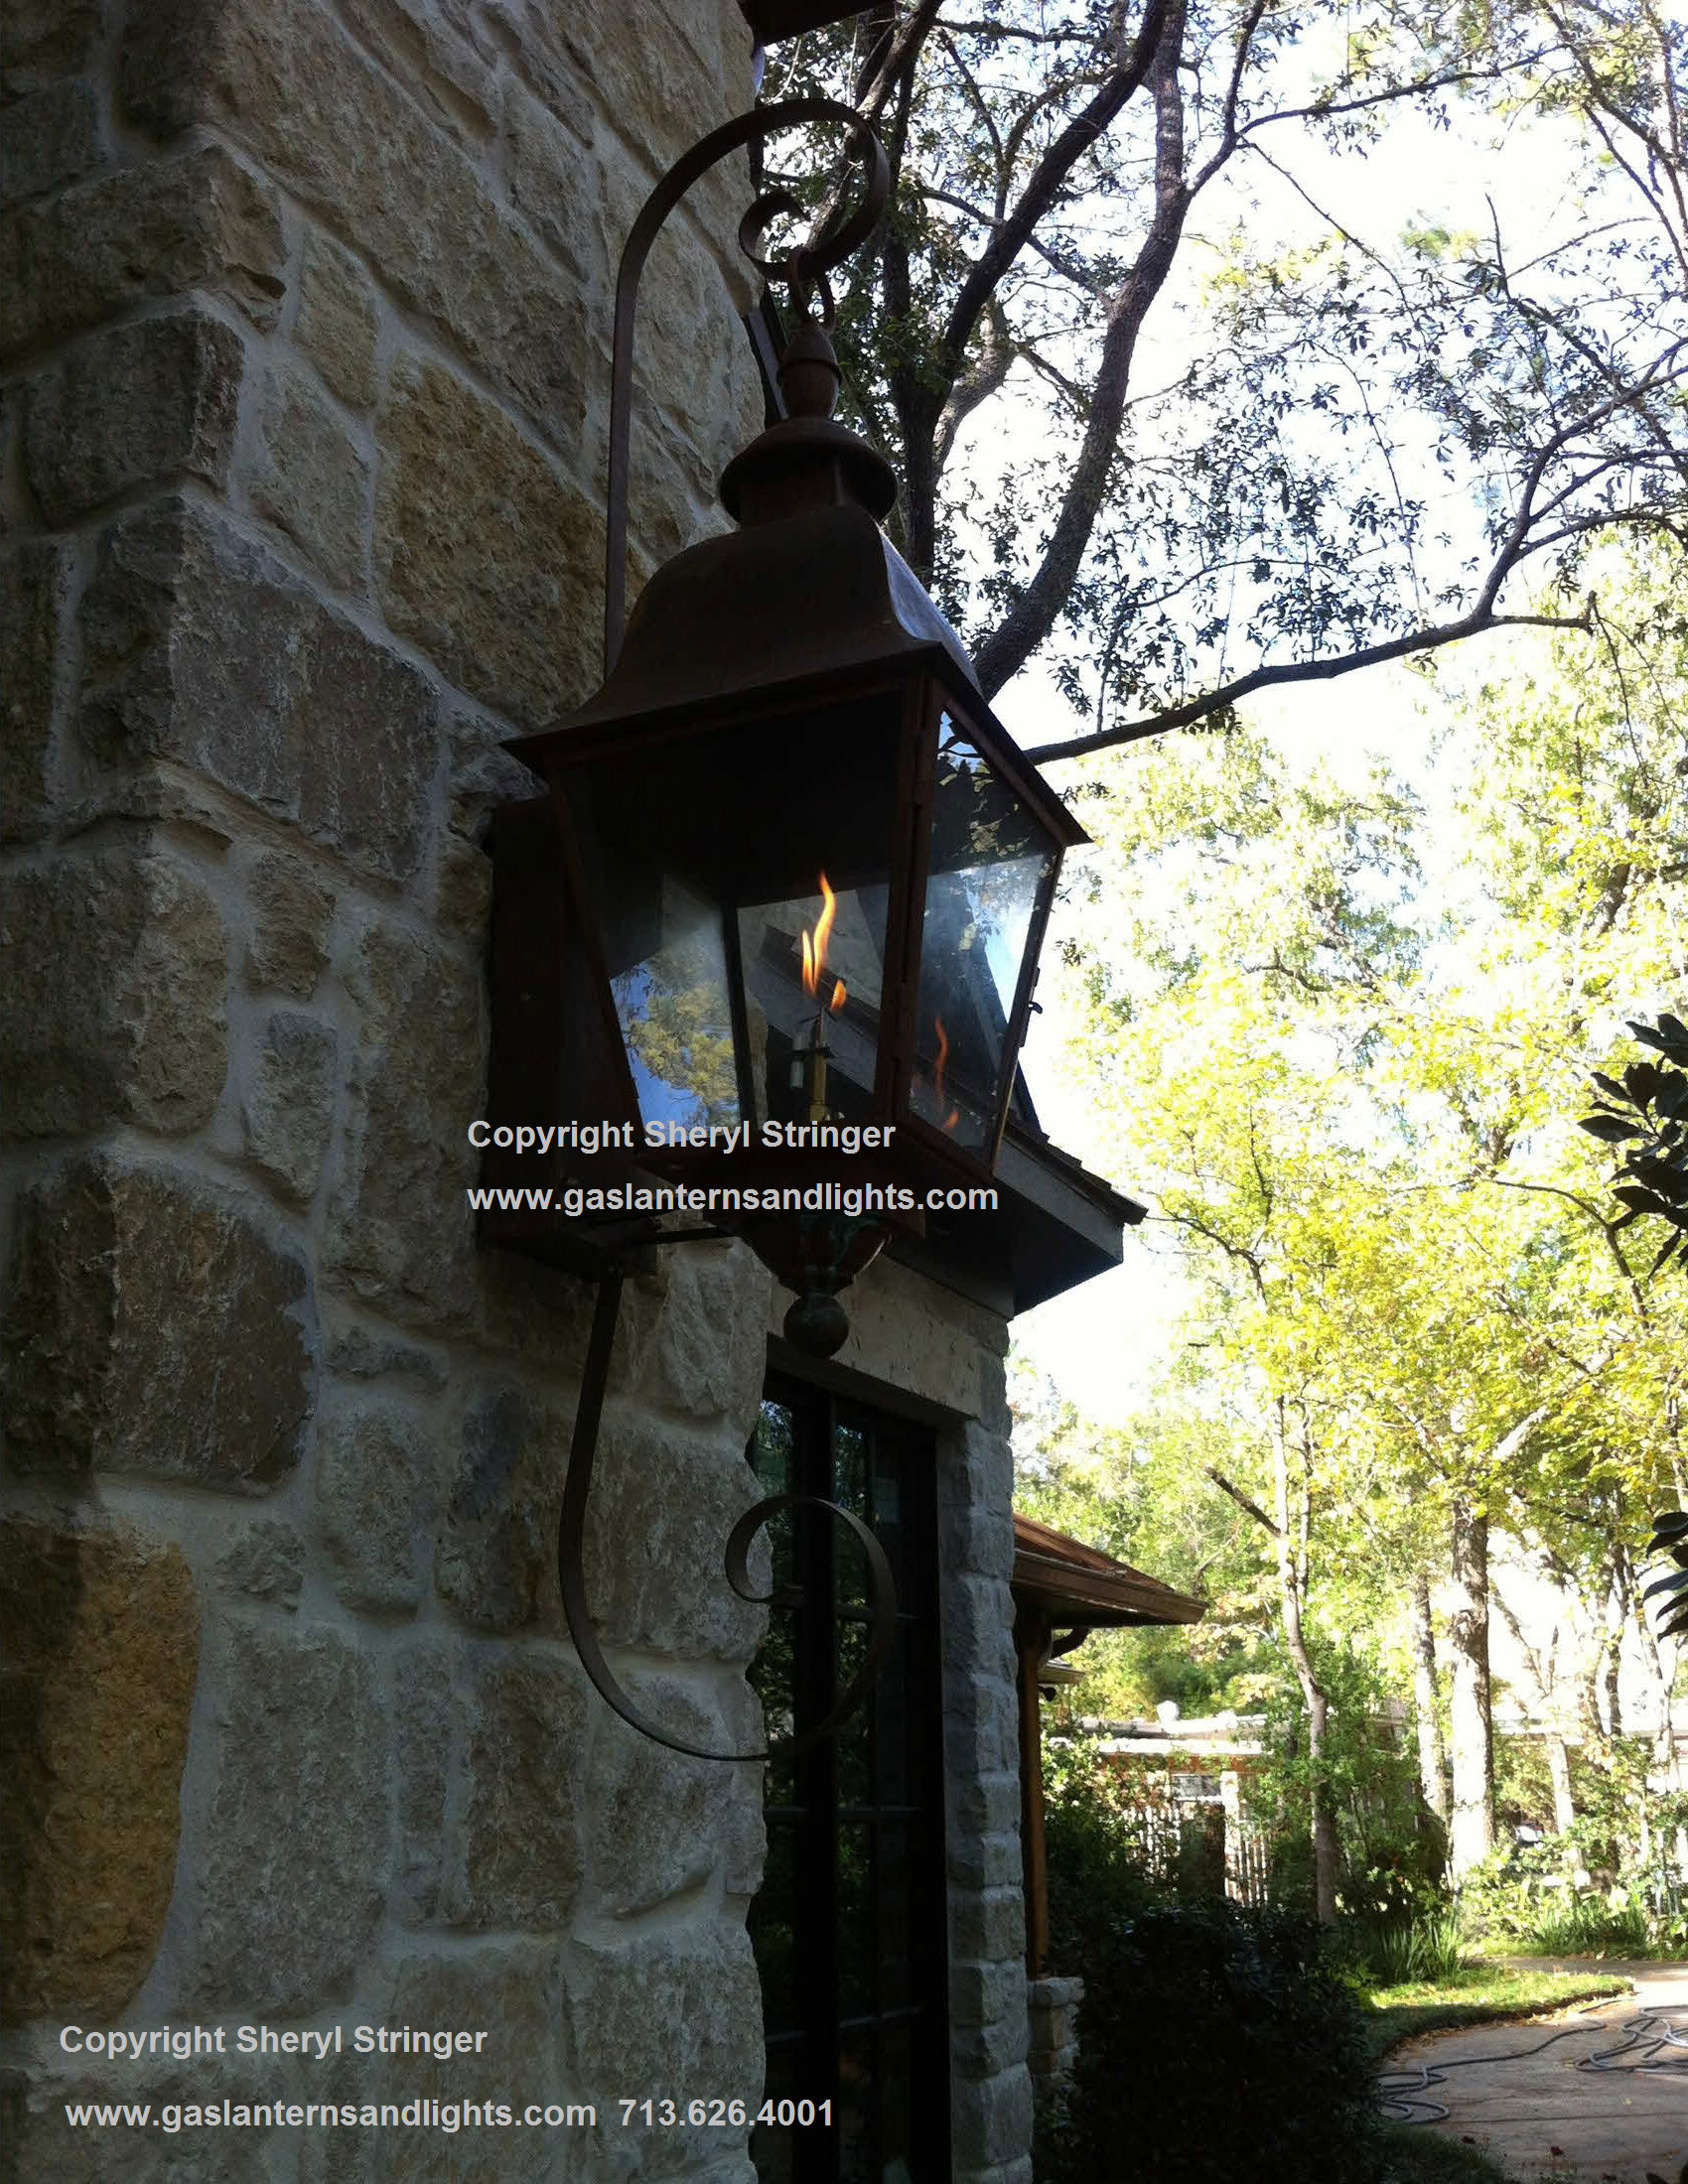 Tuscan Gas Lantern with Curls by Sheryl Stringer